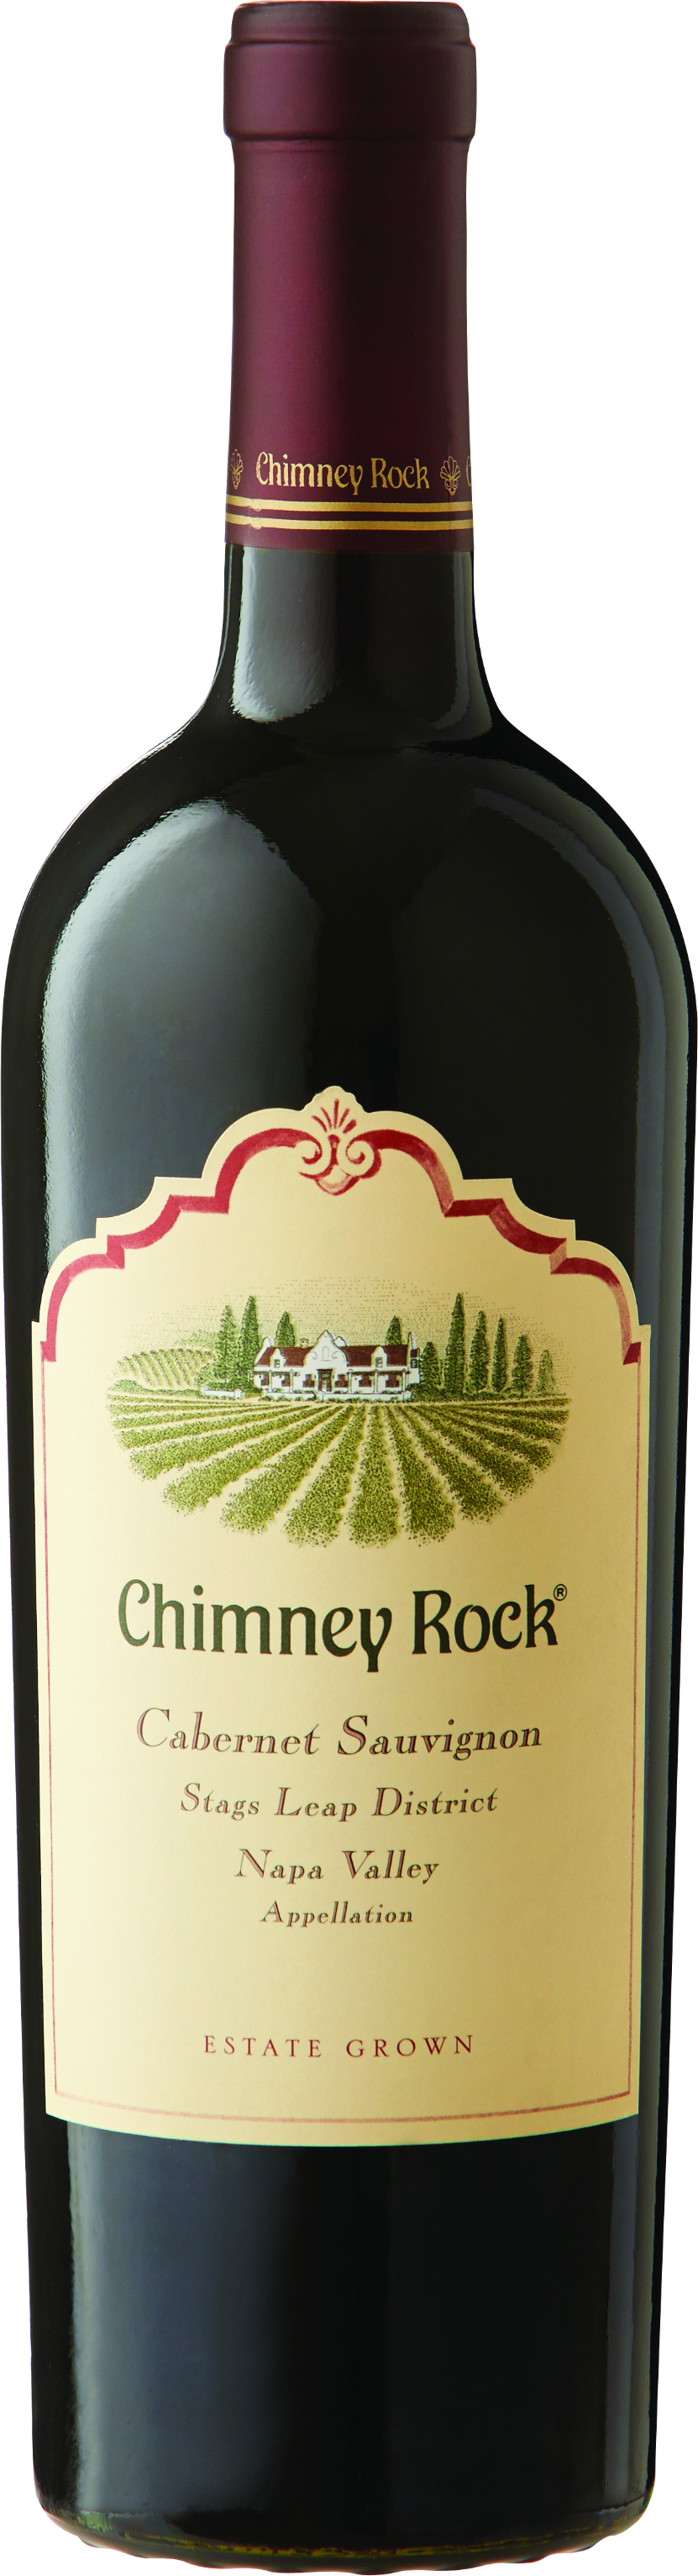 Chimney Rock Cabernet Sauvignon Stags Leap District 2015 Product Image